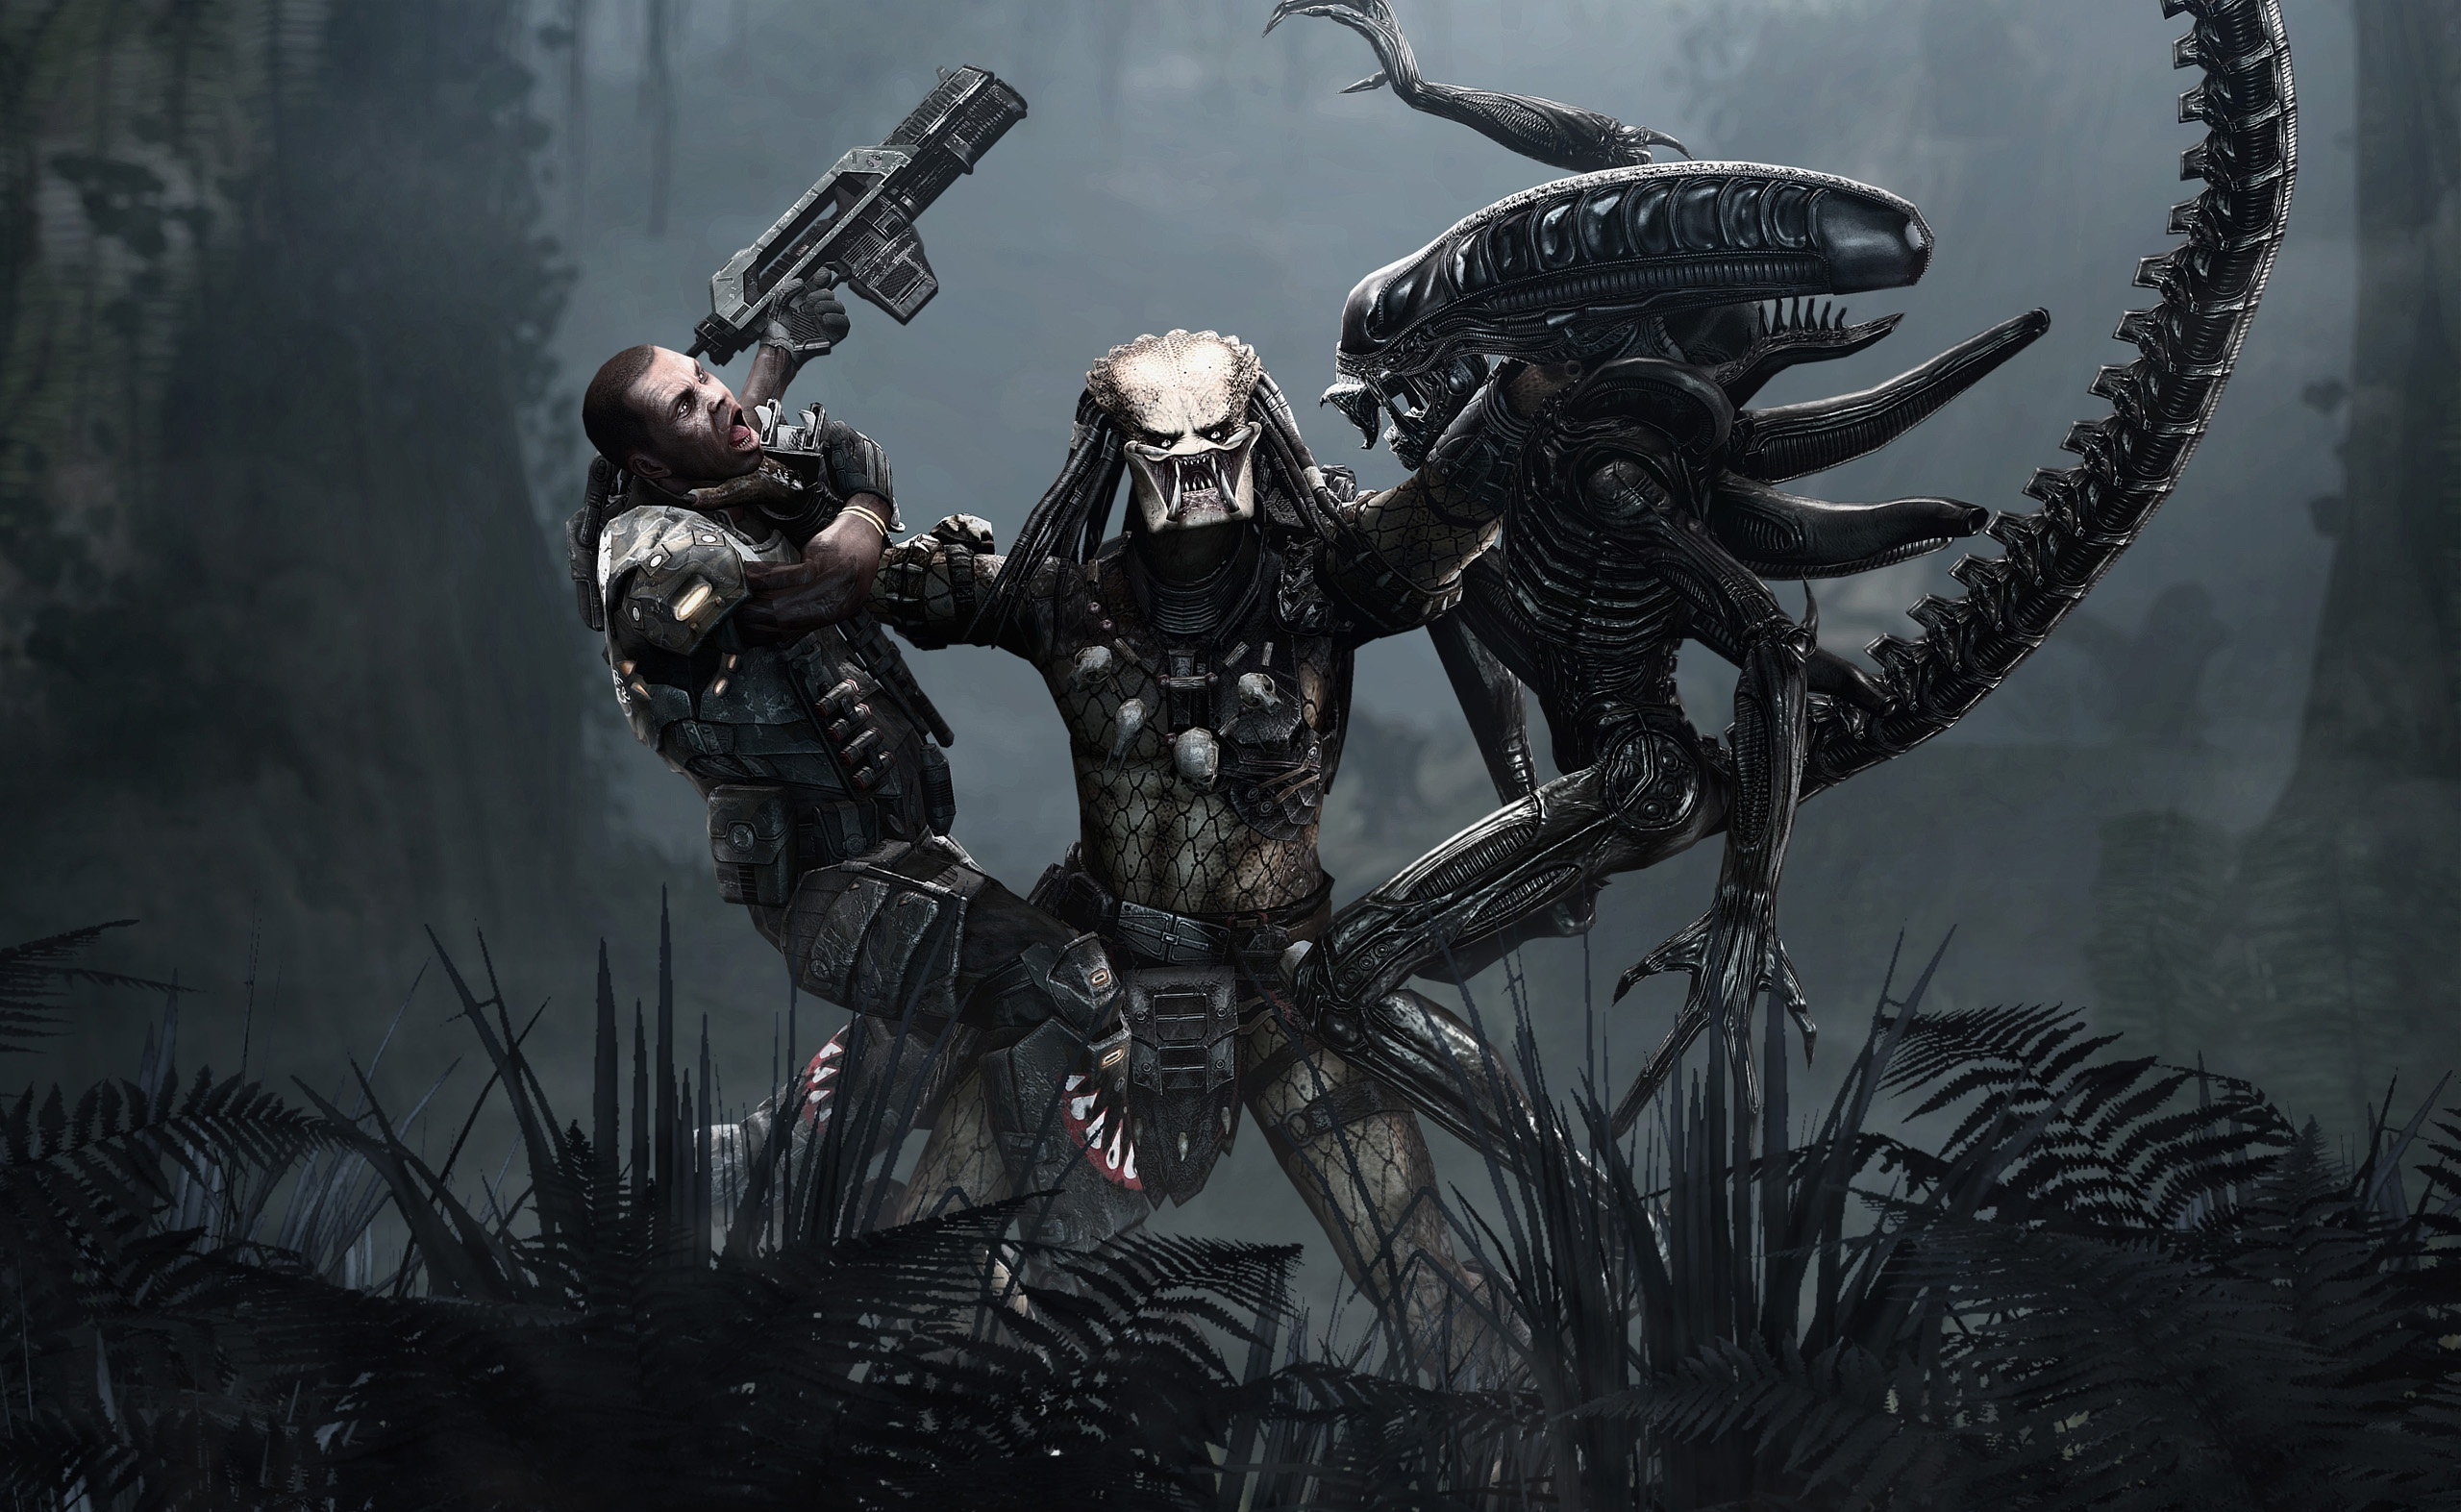 30 aliens vs predator hd wallpapers background images wallpaper hd wallpaper background image id109601 voltagebd Images